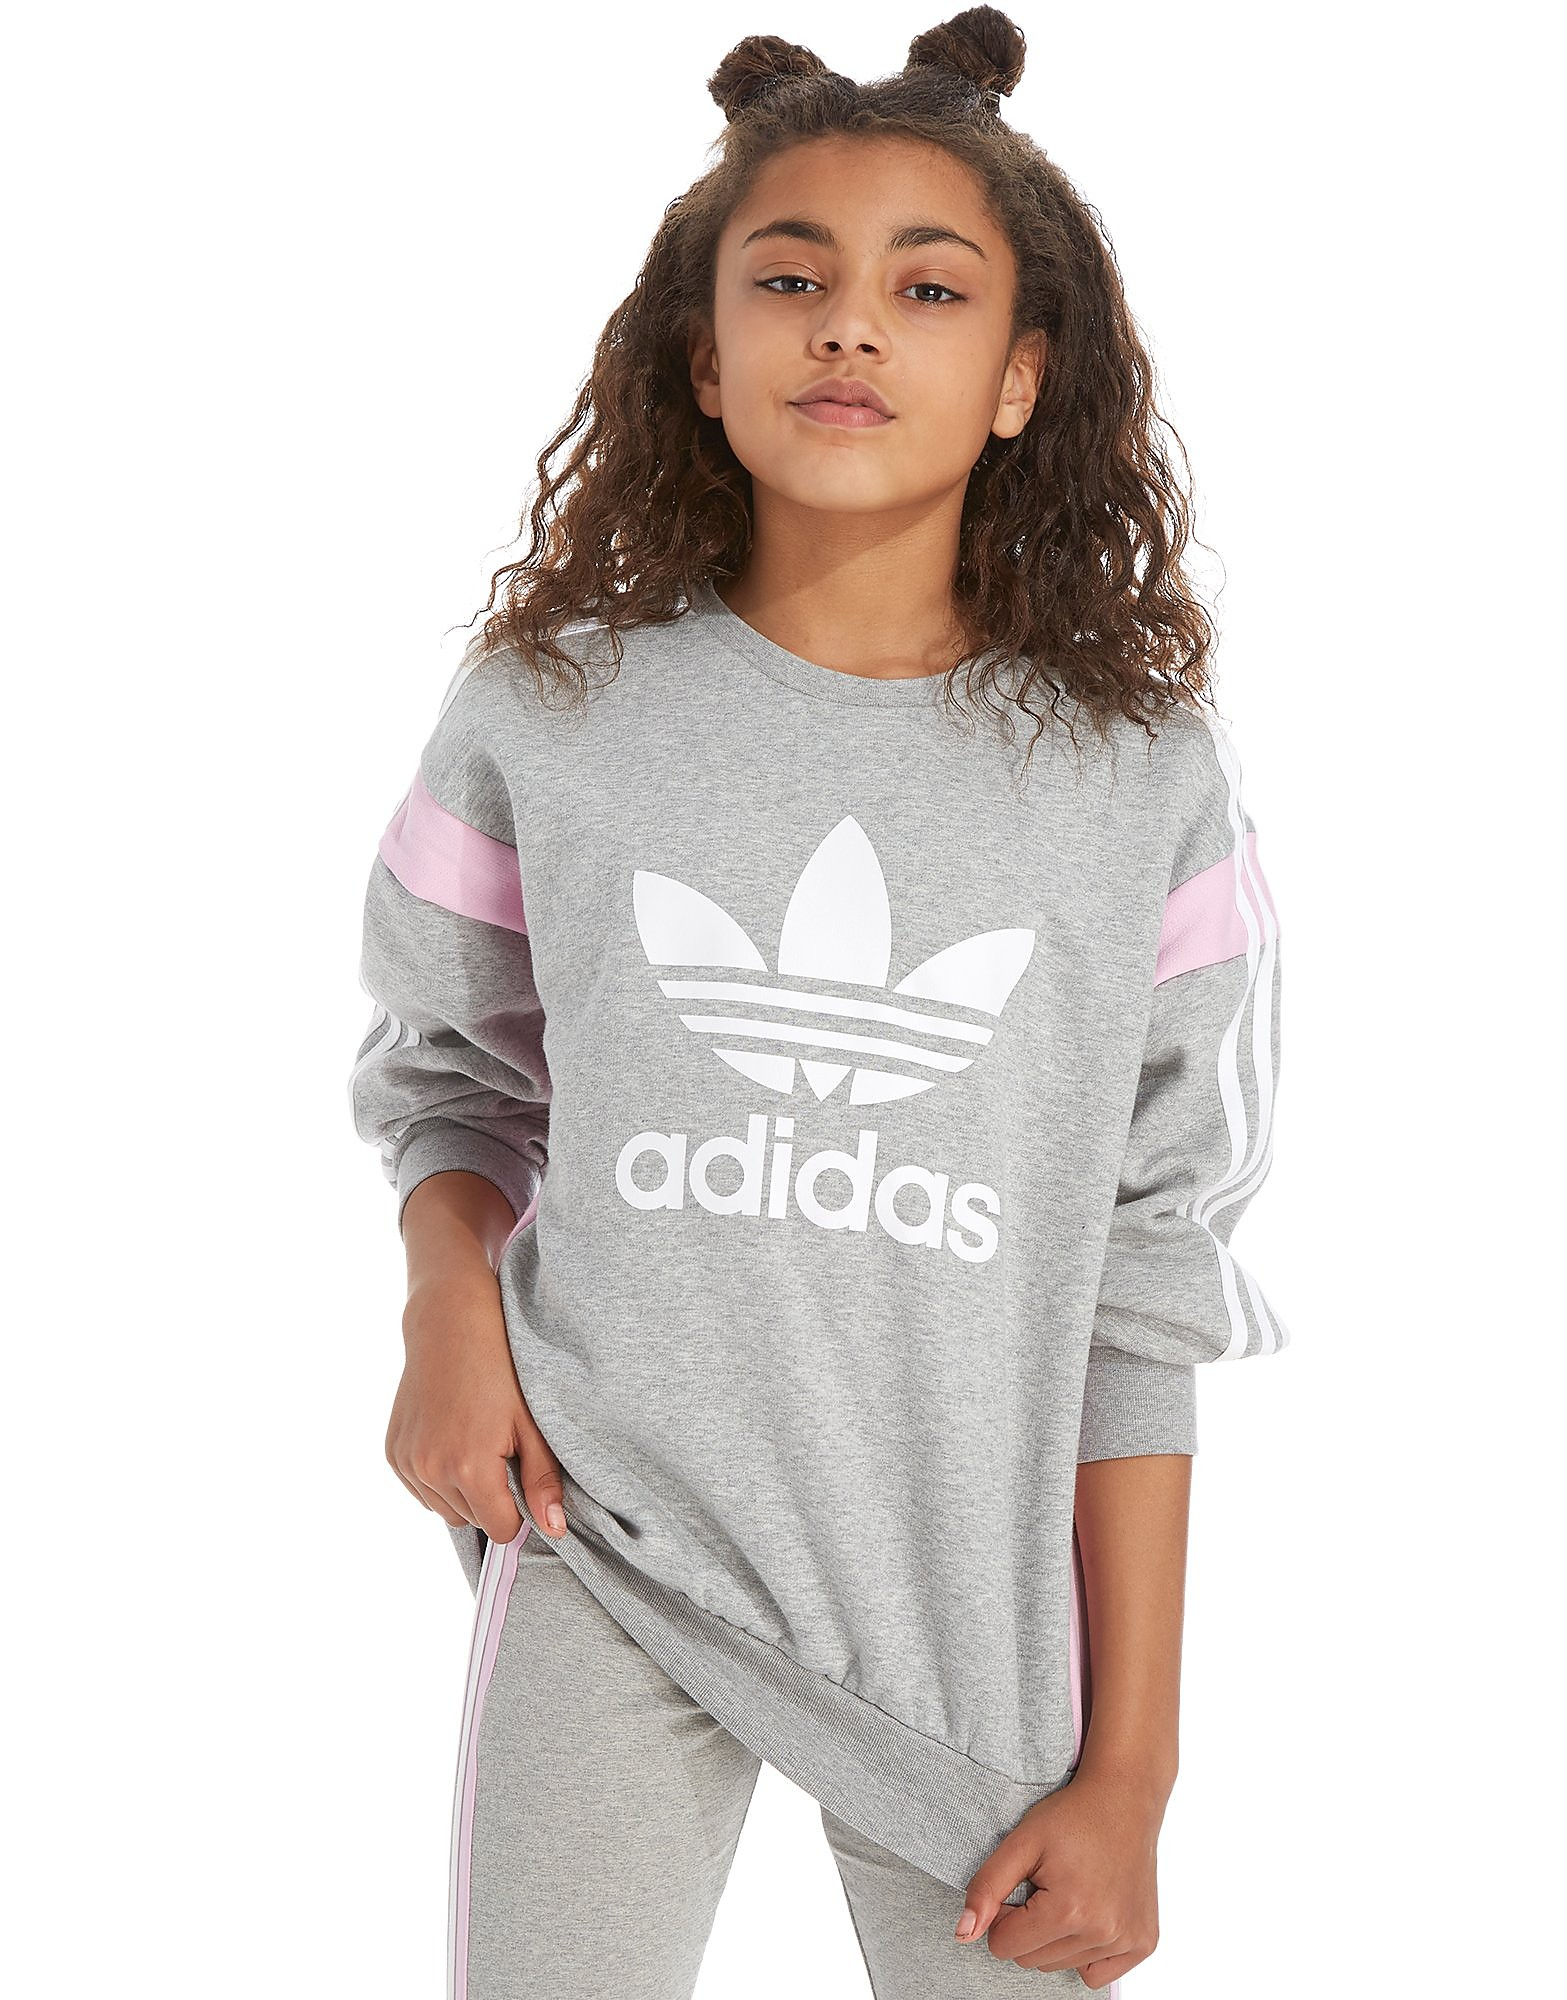 adidas Originals Girls' Boyfriend Fit Crew Sweatshirt Junior